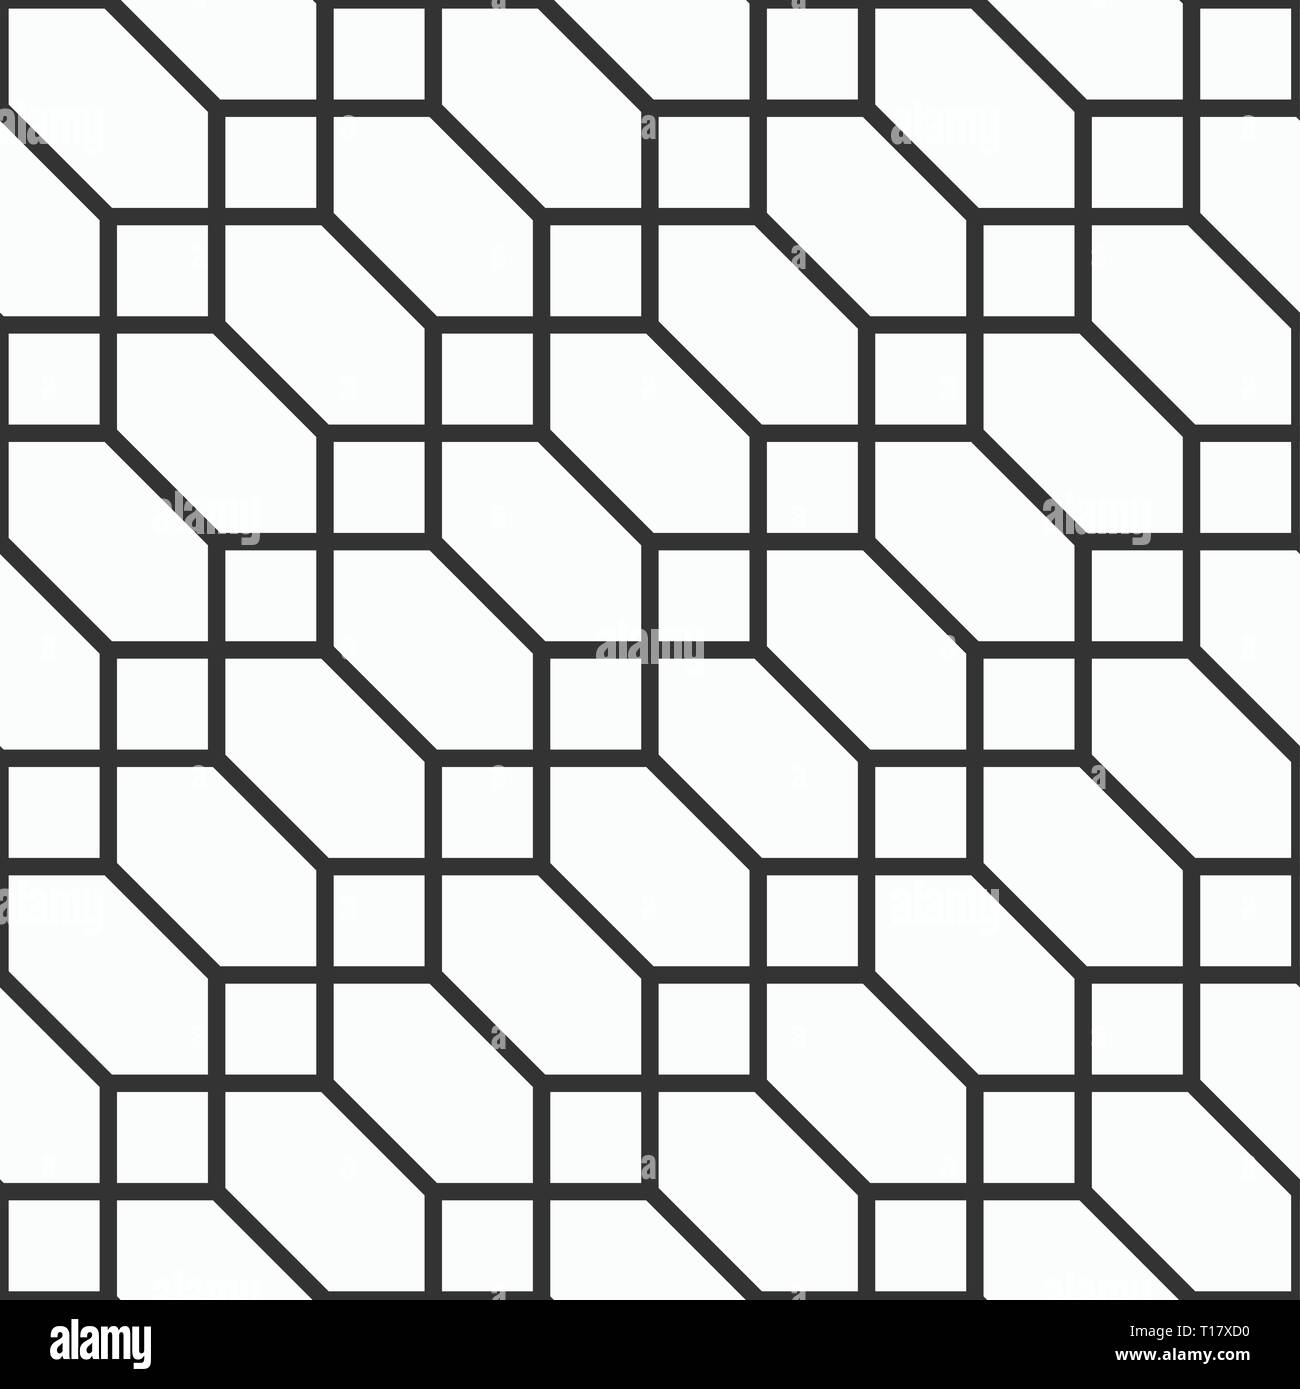 Abstract seamless pattern of hexagons and squares. Diagonal arrangement. Geometric lattice. Tiles motif. Linear style. Simple graphic print. Vector. - Stock Image